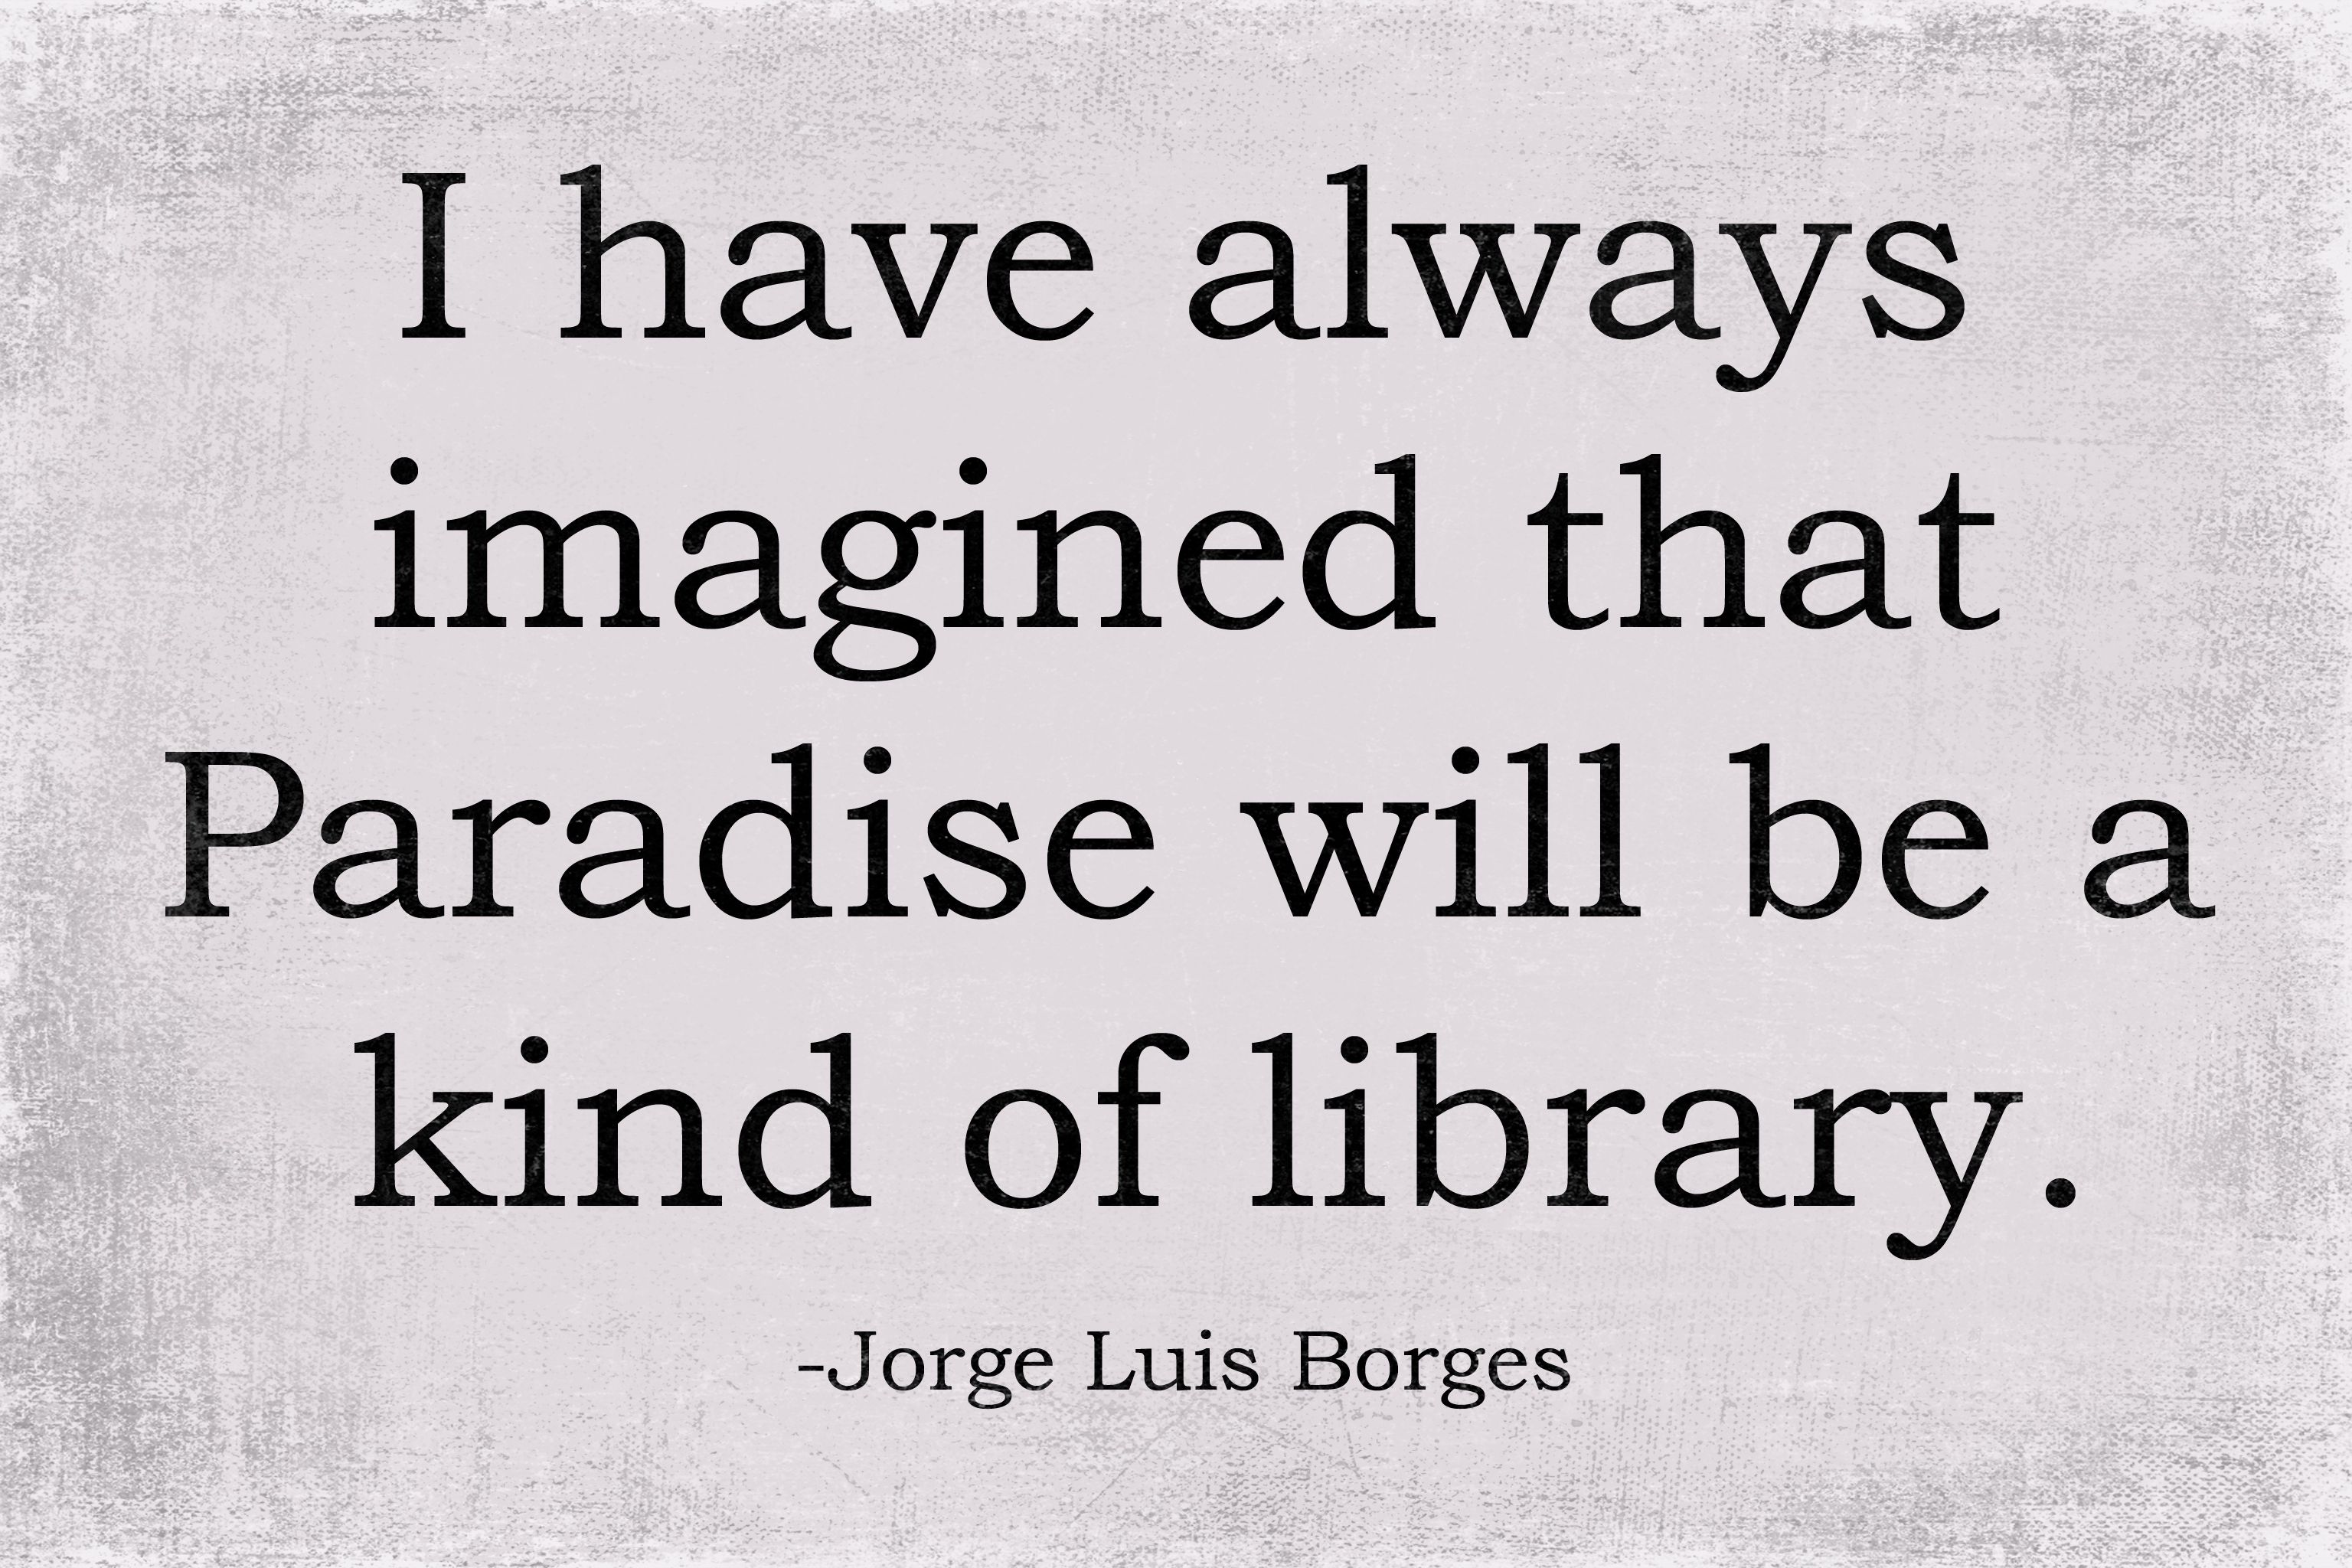 Library Quote Inspiration Books Library Quotes Reading Quotes Book Quotes